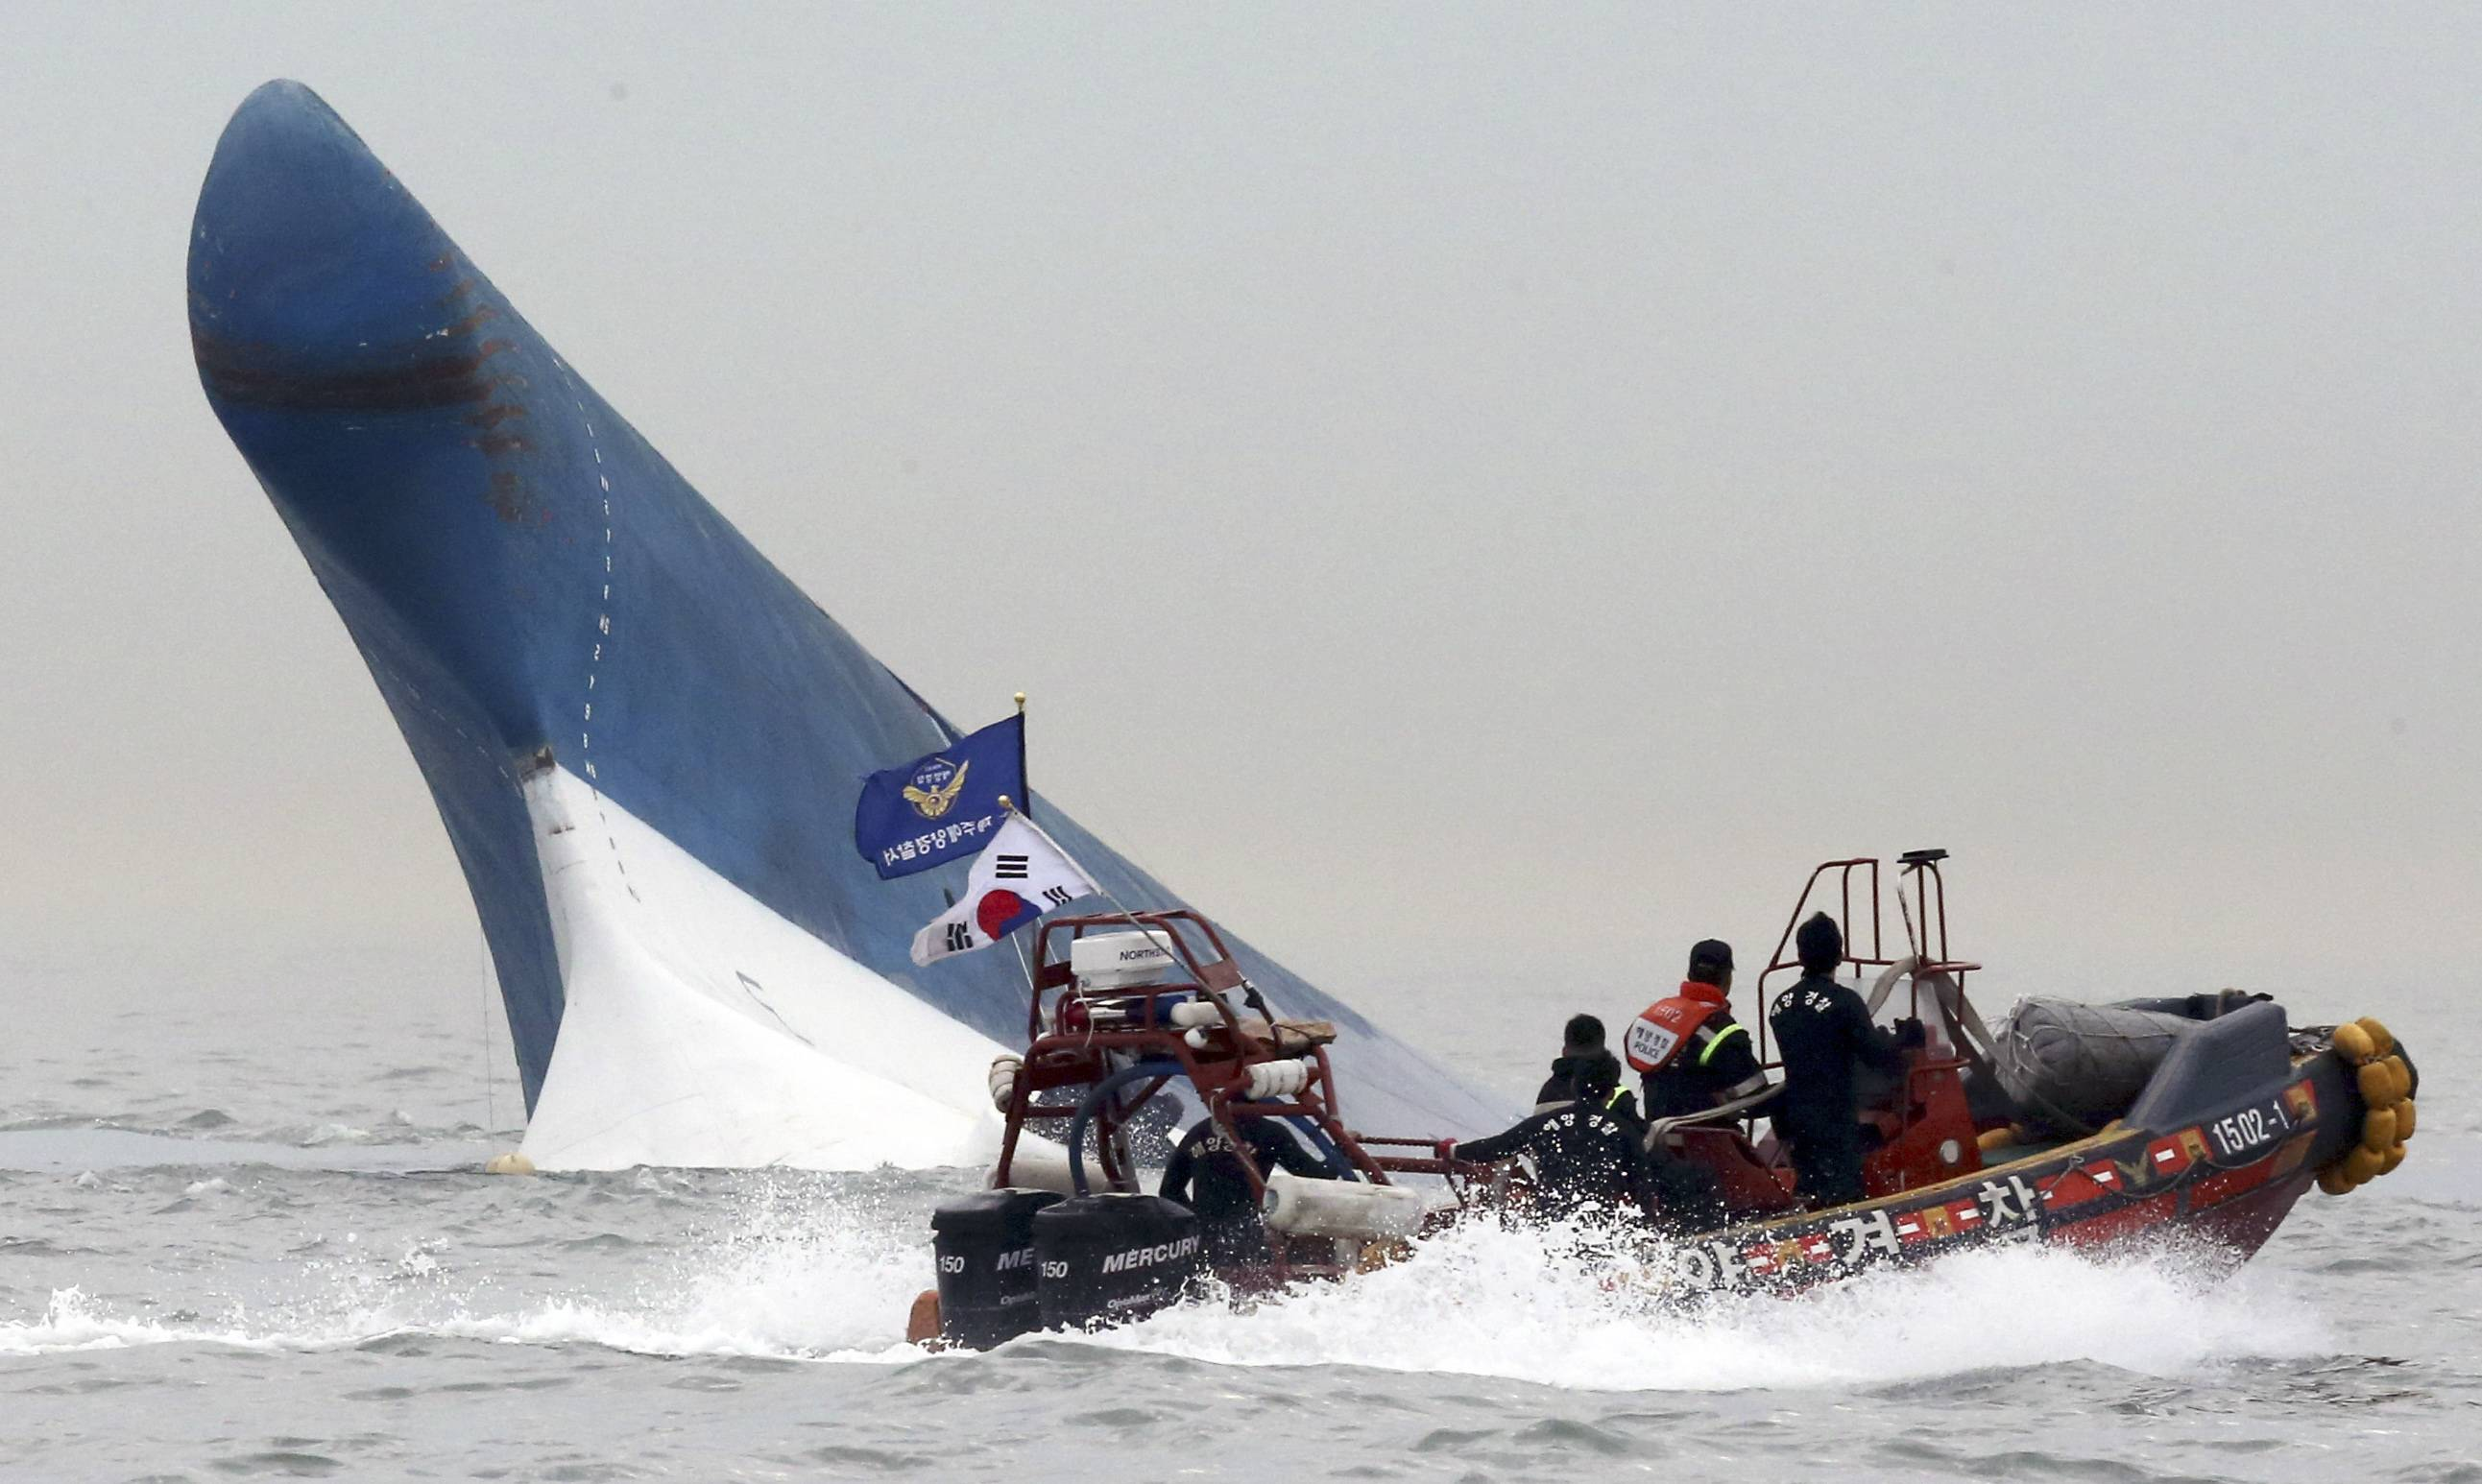 South Korean coast guard officers try Wednesday to rescue passengers from a ferry sinking in the water off the southern coast near Jindo, south of Seoul. The ferry carrying 475 people, mostly high school students on an overnight trip to a tourist island, sank off South Korea's southern coast on Wednesday, leaving nearly 300 people missing despite a frantic, hourslong rescue by dozens of ships and helicopters.